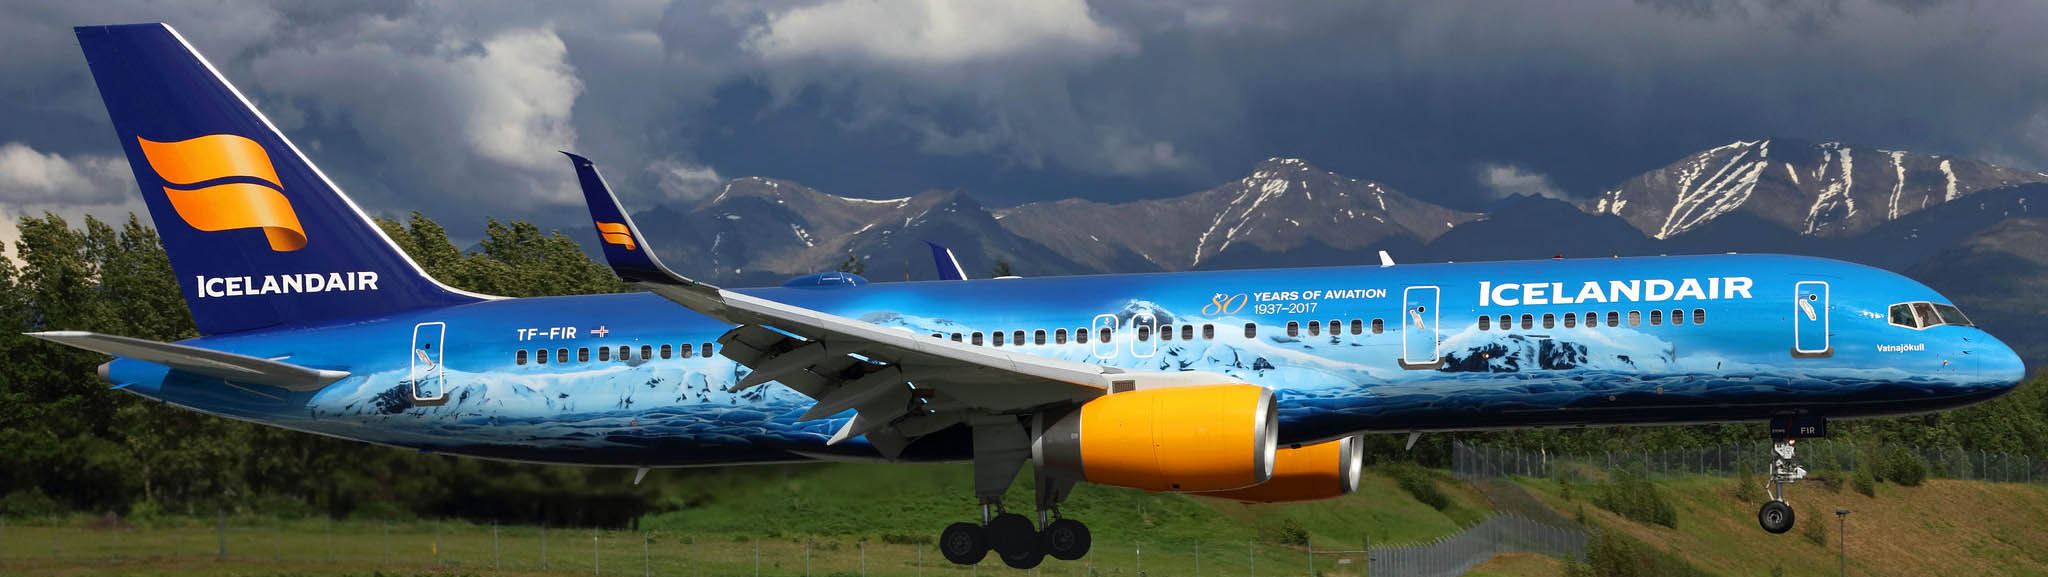 Icelandair Boeing 757 about to touch down